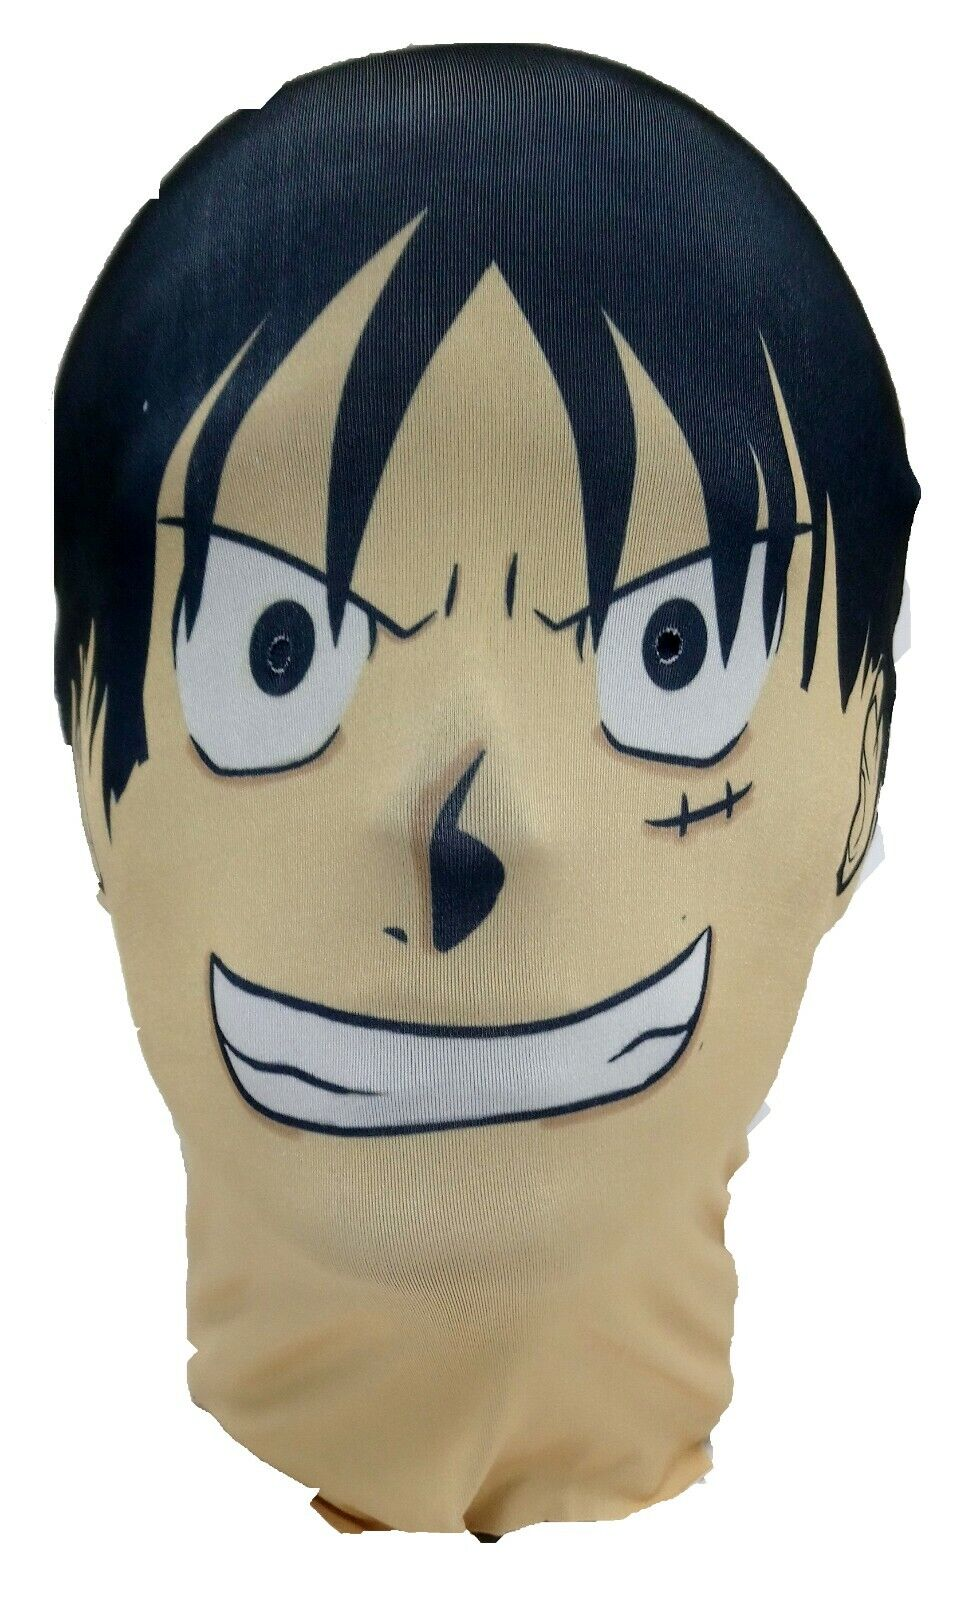 Details About Monkey D Luffy Full Head Mask Straw Hat One Piece Parody Cosplay Halloween